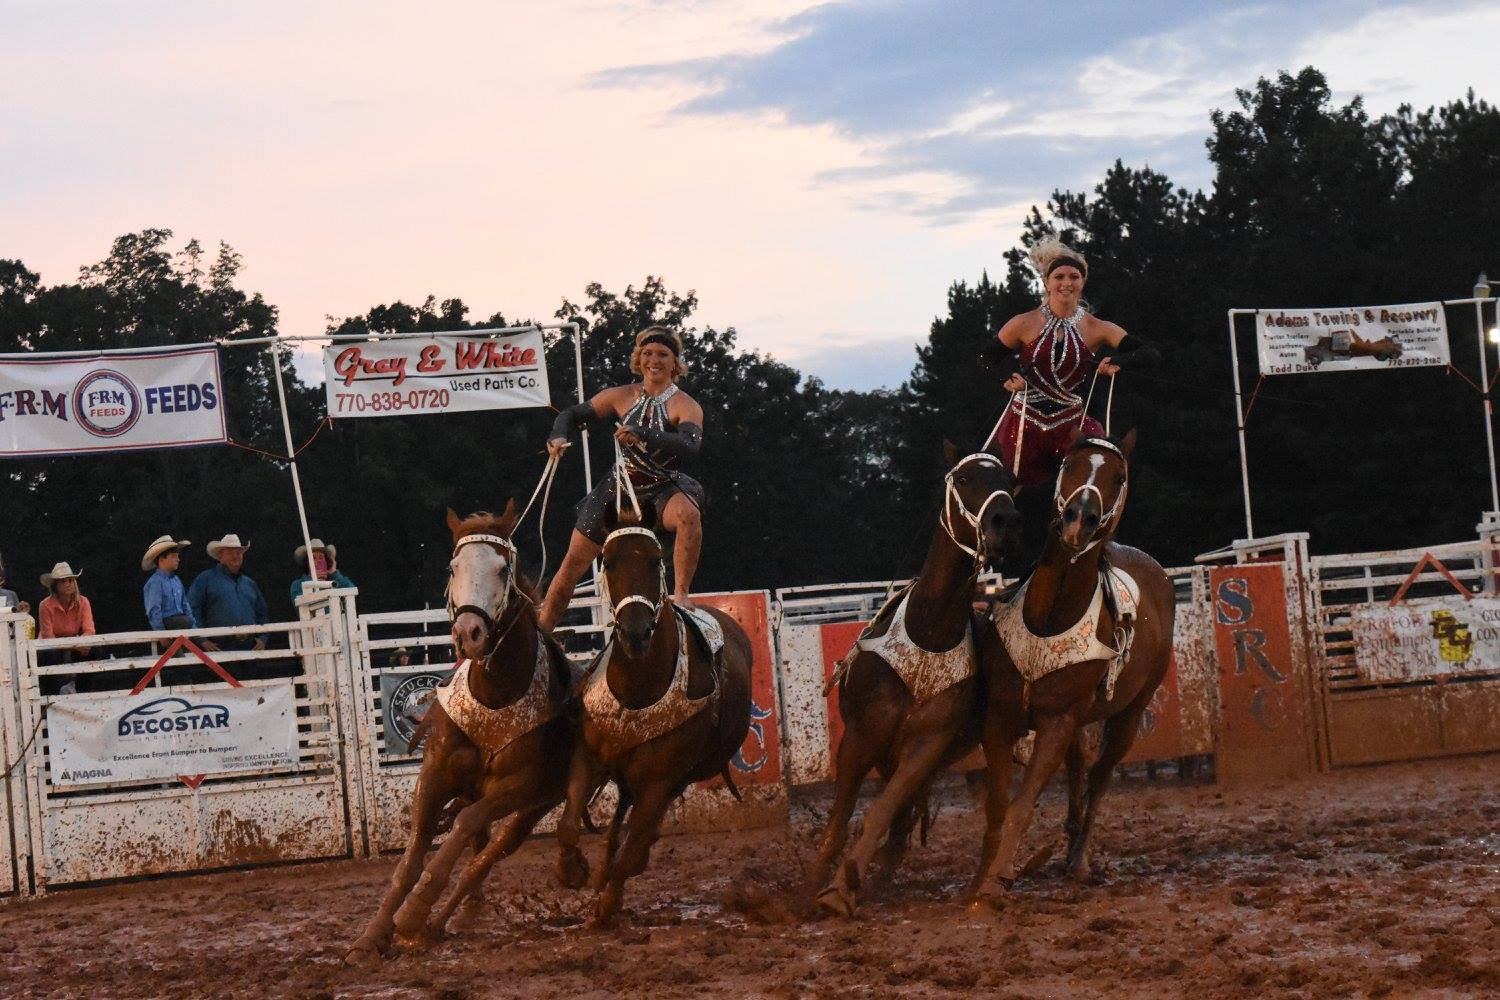 Not even a muddy arena will stop us from performing at our best ability!